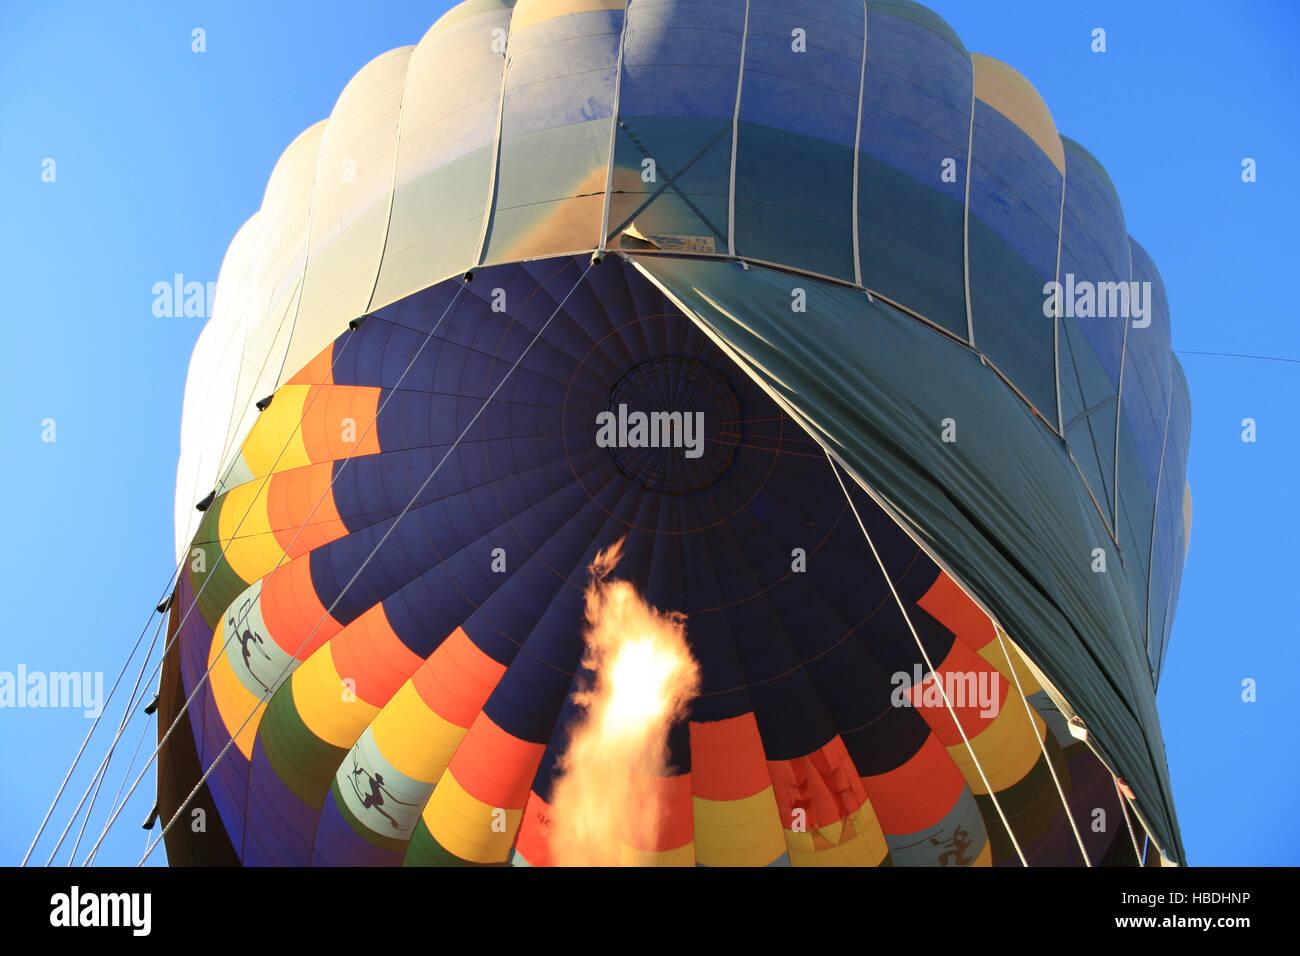 Flame warming a hot air balloon as it rises into a clear blue sky Stock Photo